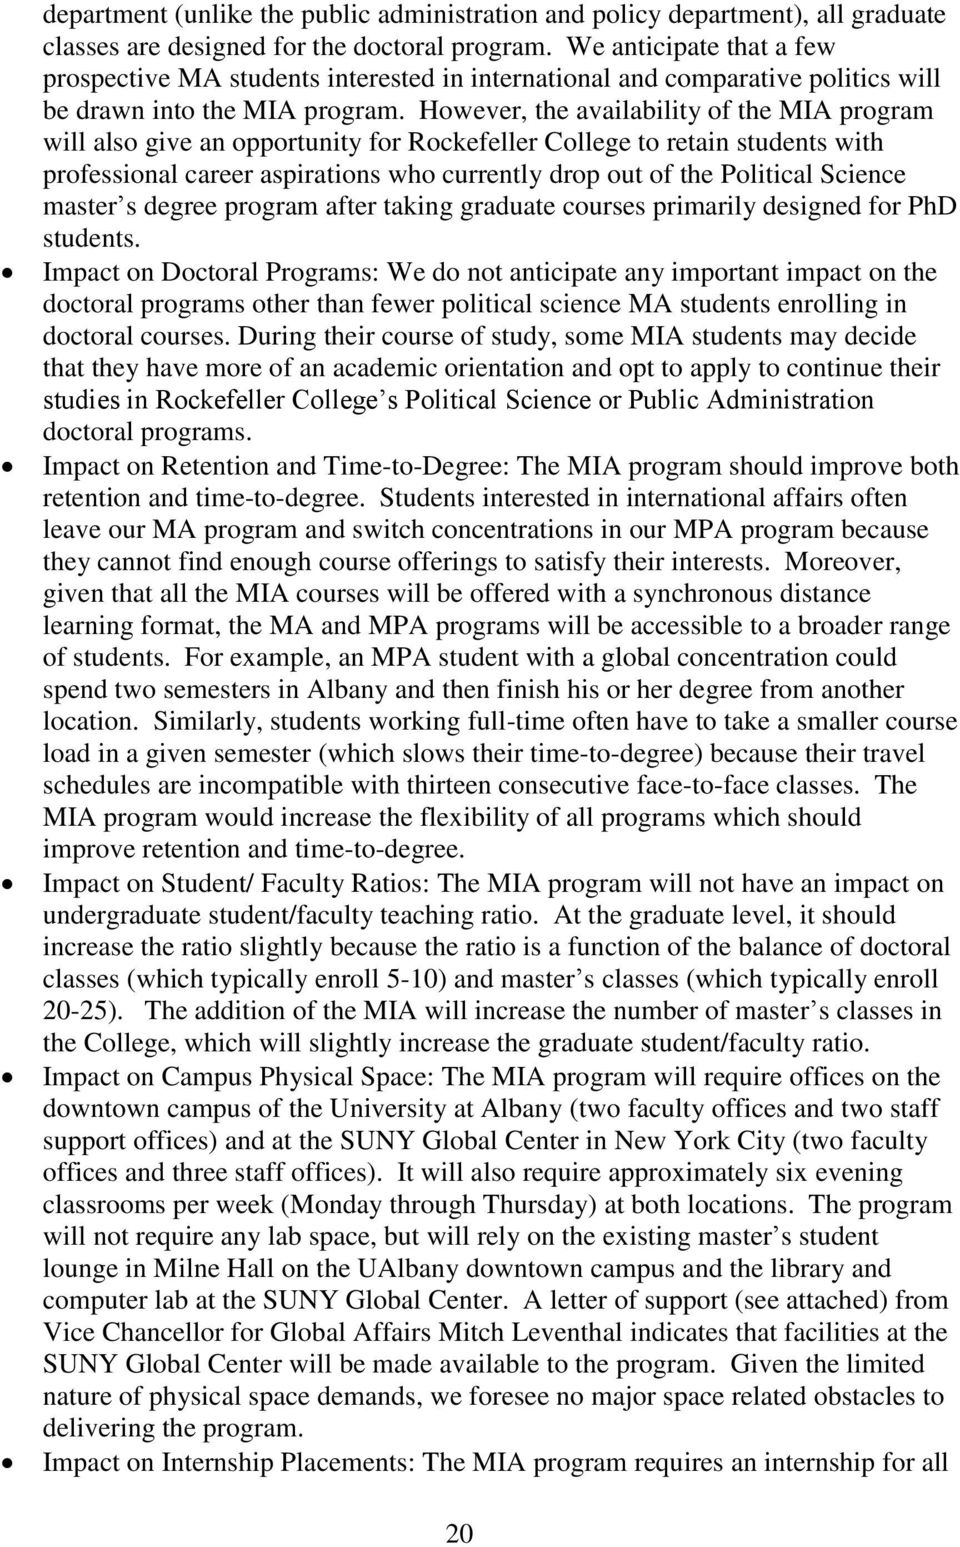 However, the availability of the MIA program will also give an opportunity for Rockefeller College to retain students with professional career aspirations who currently drop out of the Political